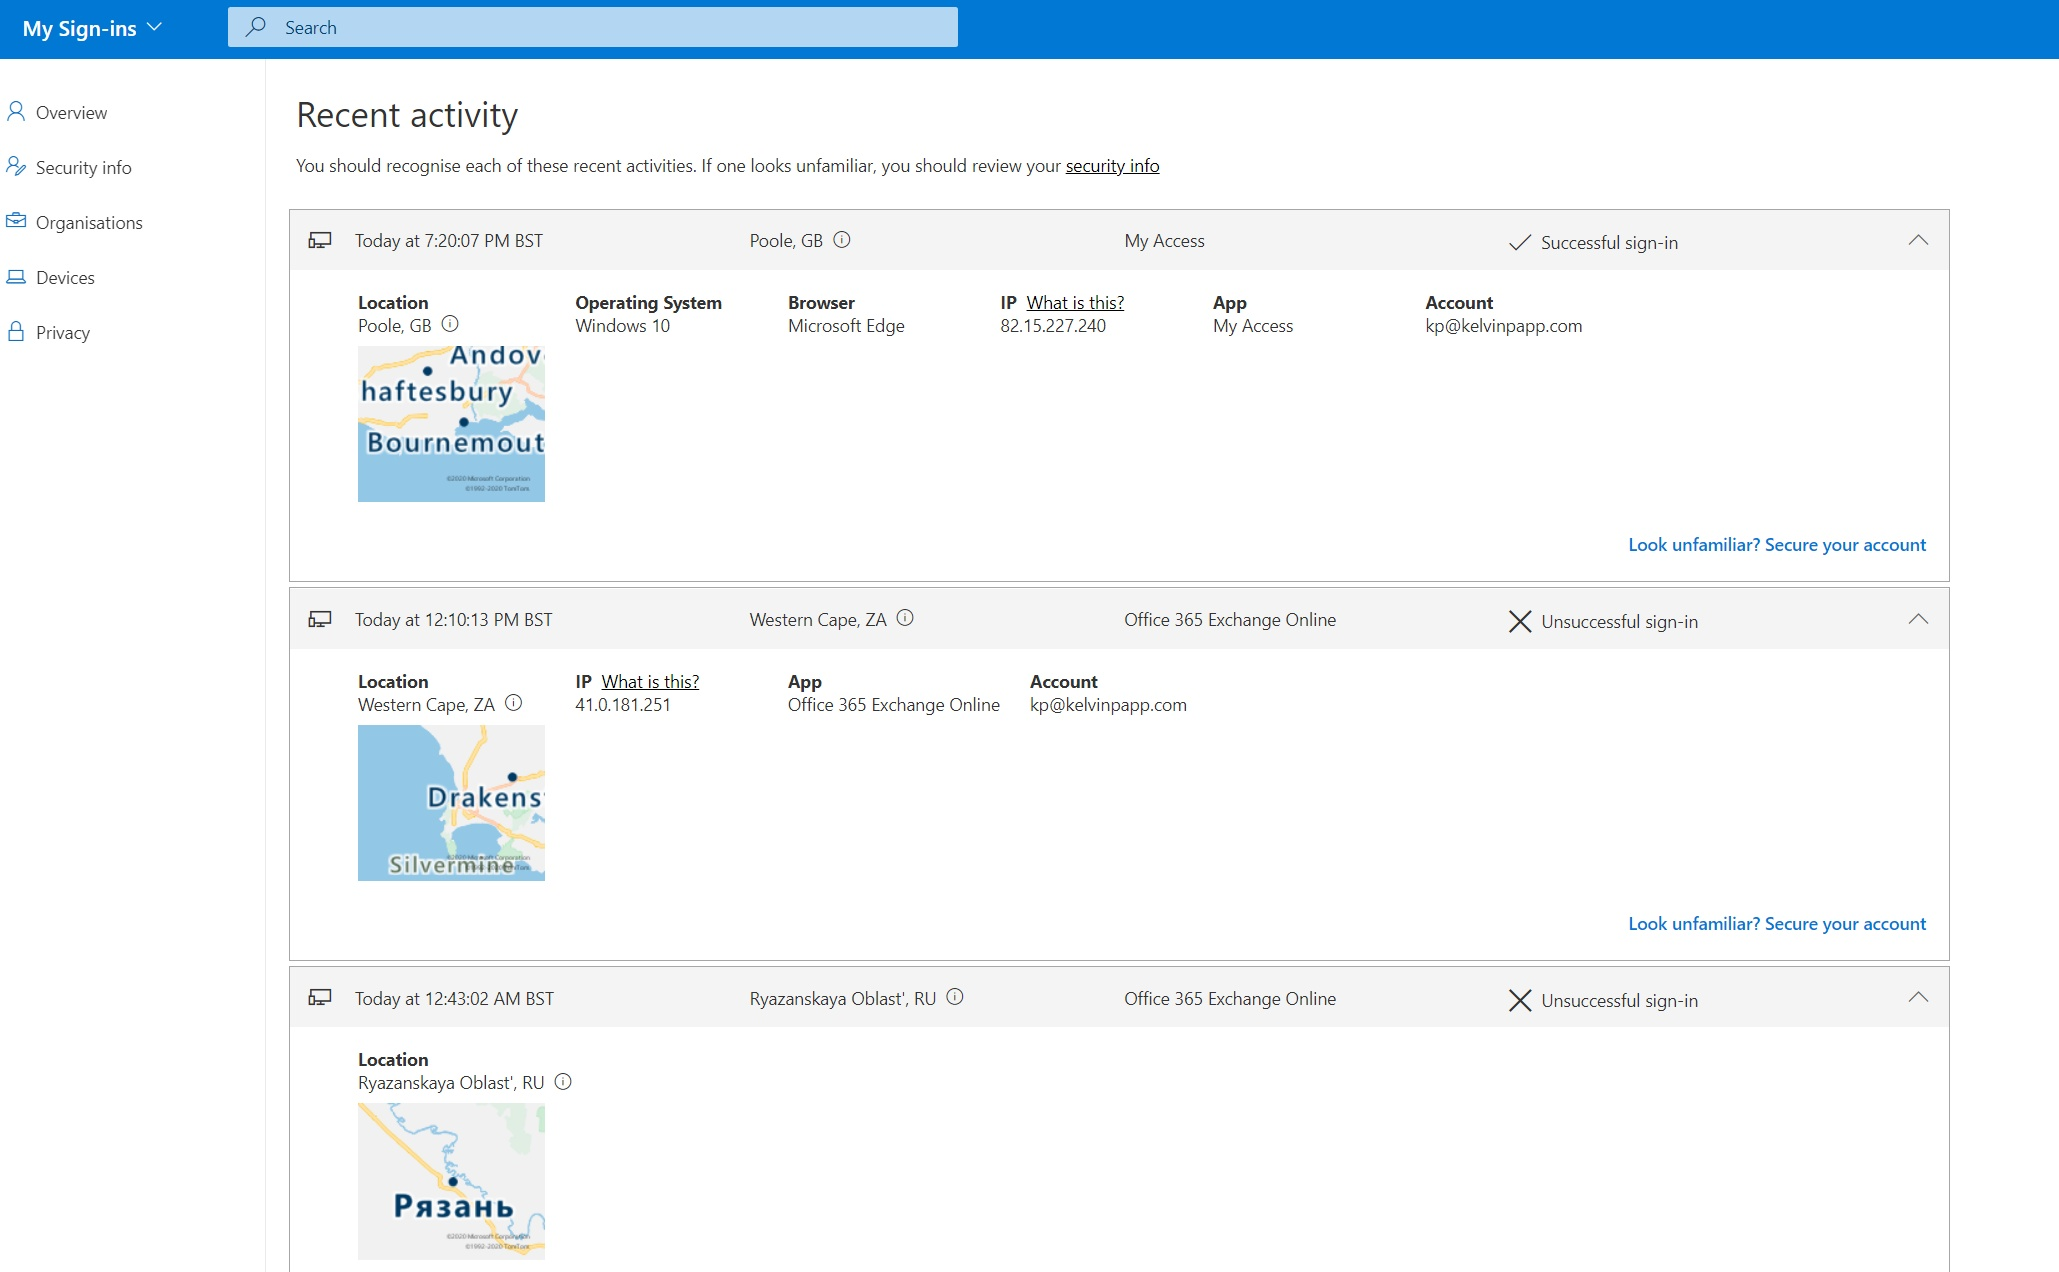 A screenshot of the My Sign-Ins dashboard